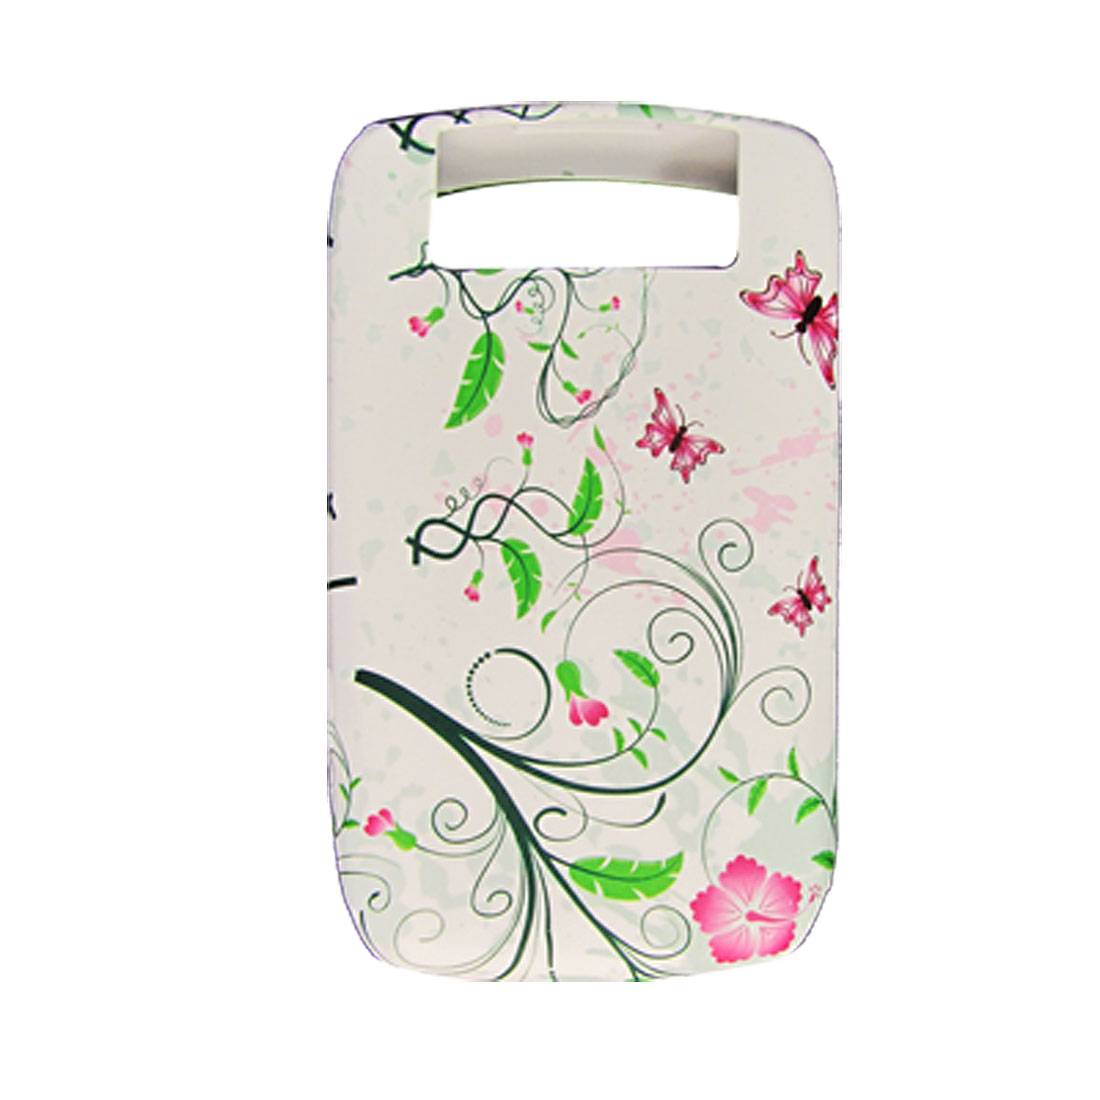 Butterfly Flower Pattern White Soft Plastic Cover for BlackBerry 8900